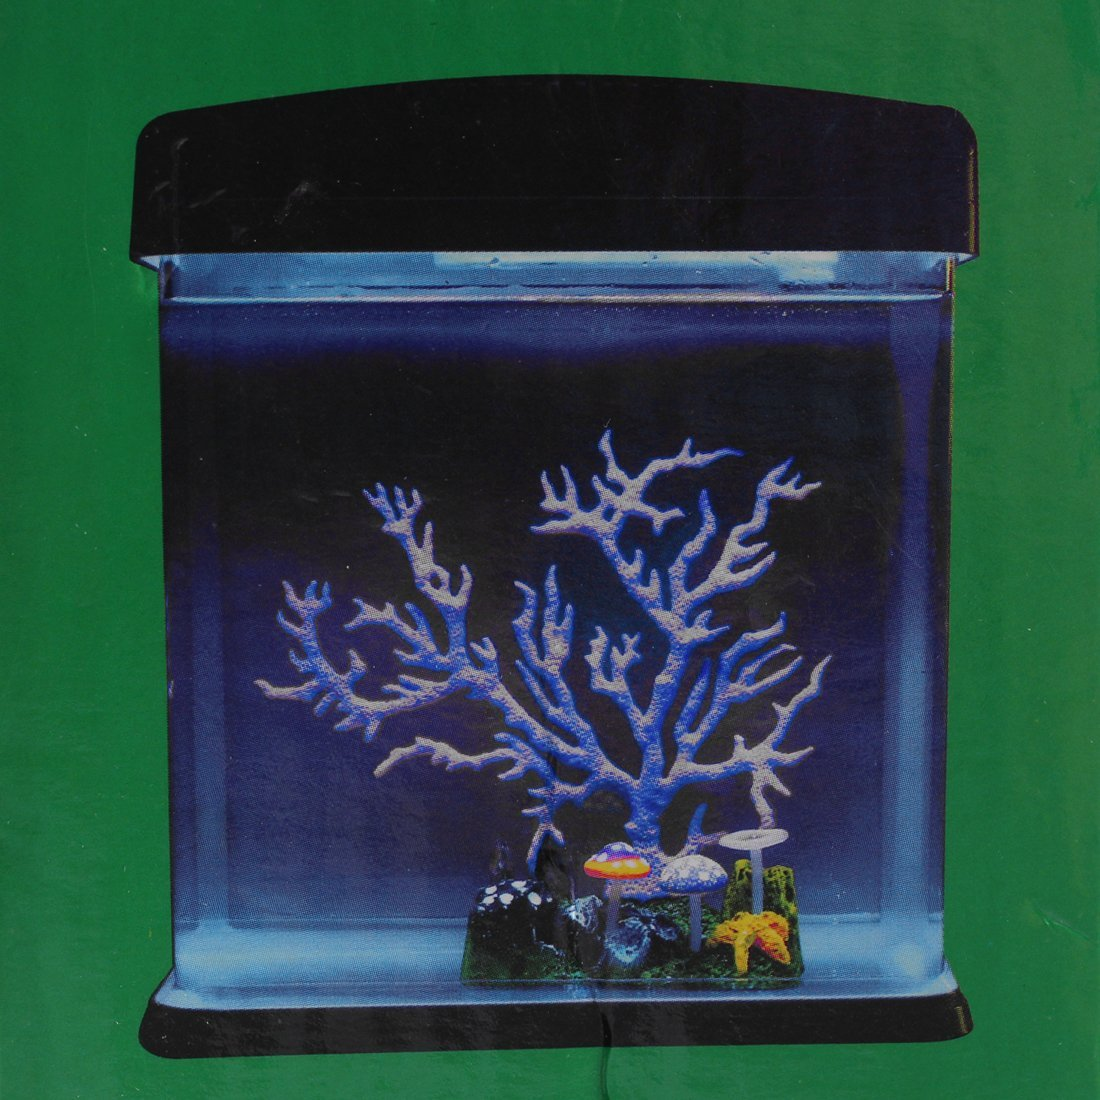 Ornamento planta Coral DealMux bajo el agua del acuario Fish Tank paisaje artificial Sucker: Amazon.es: Productos para mascotas